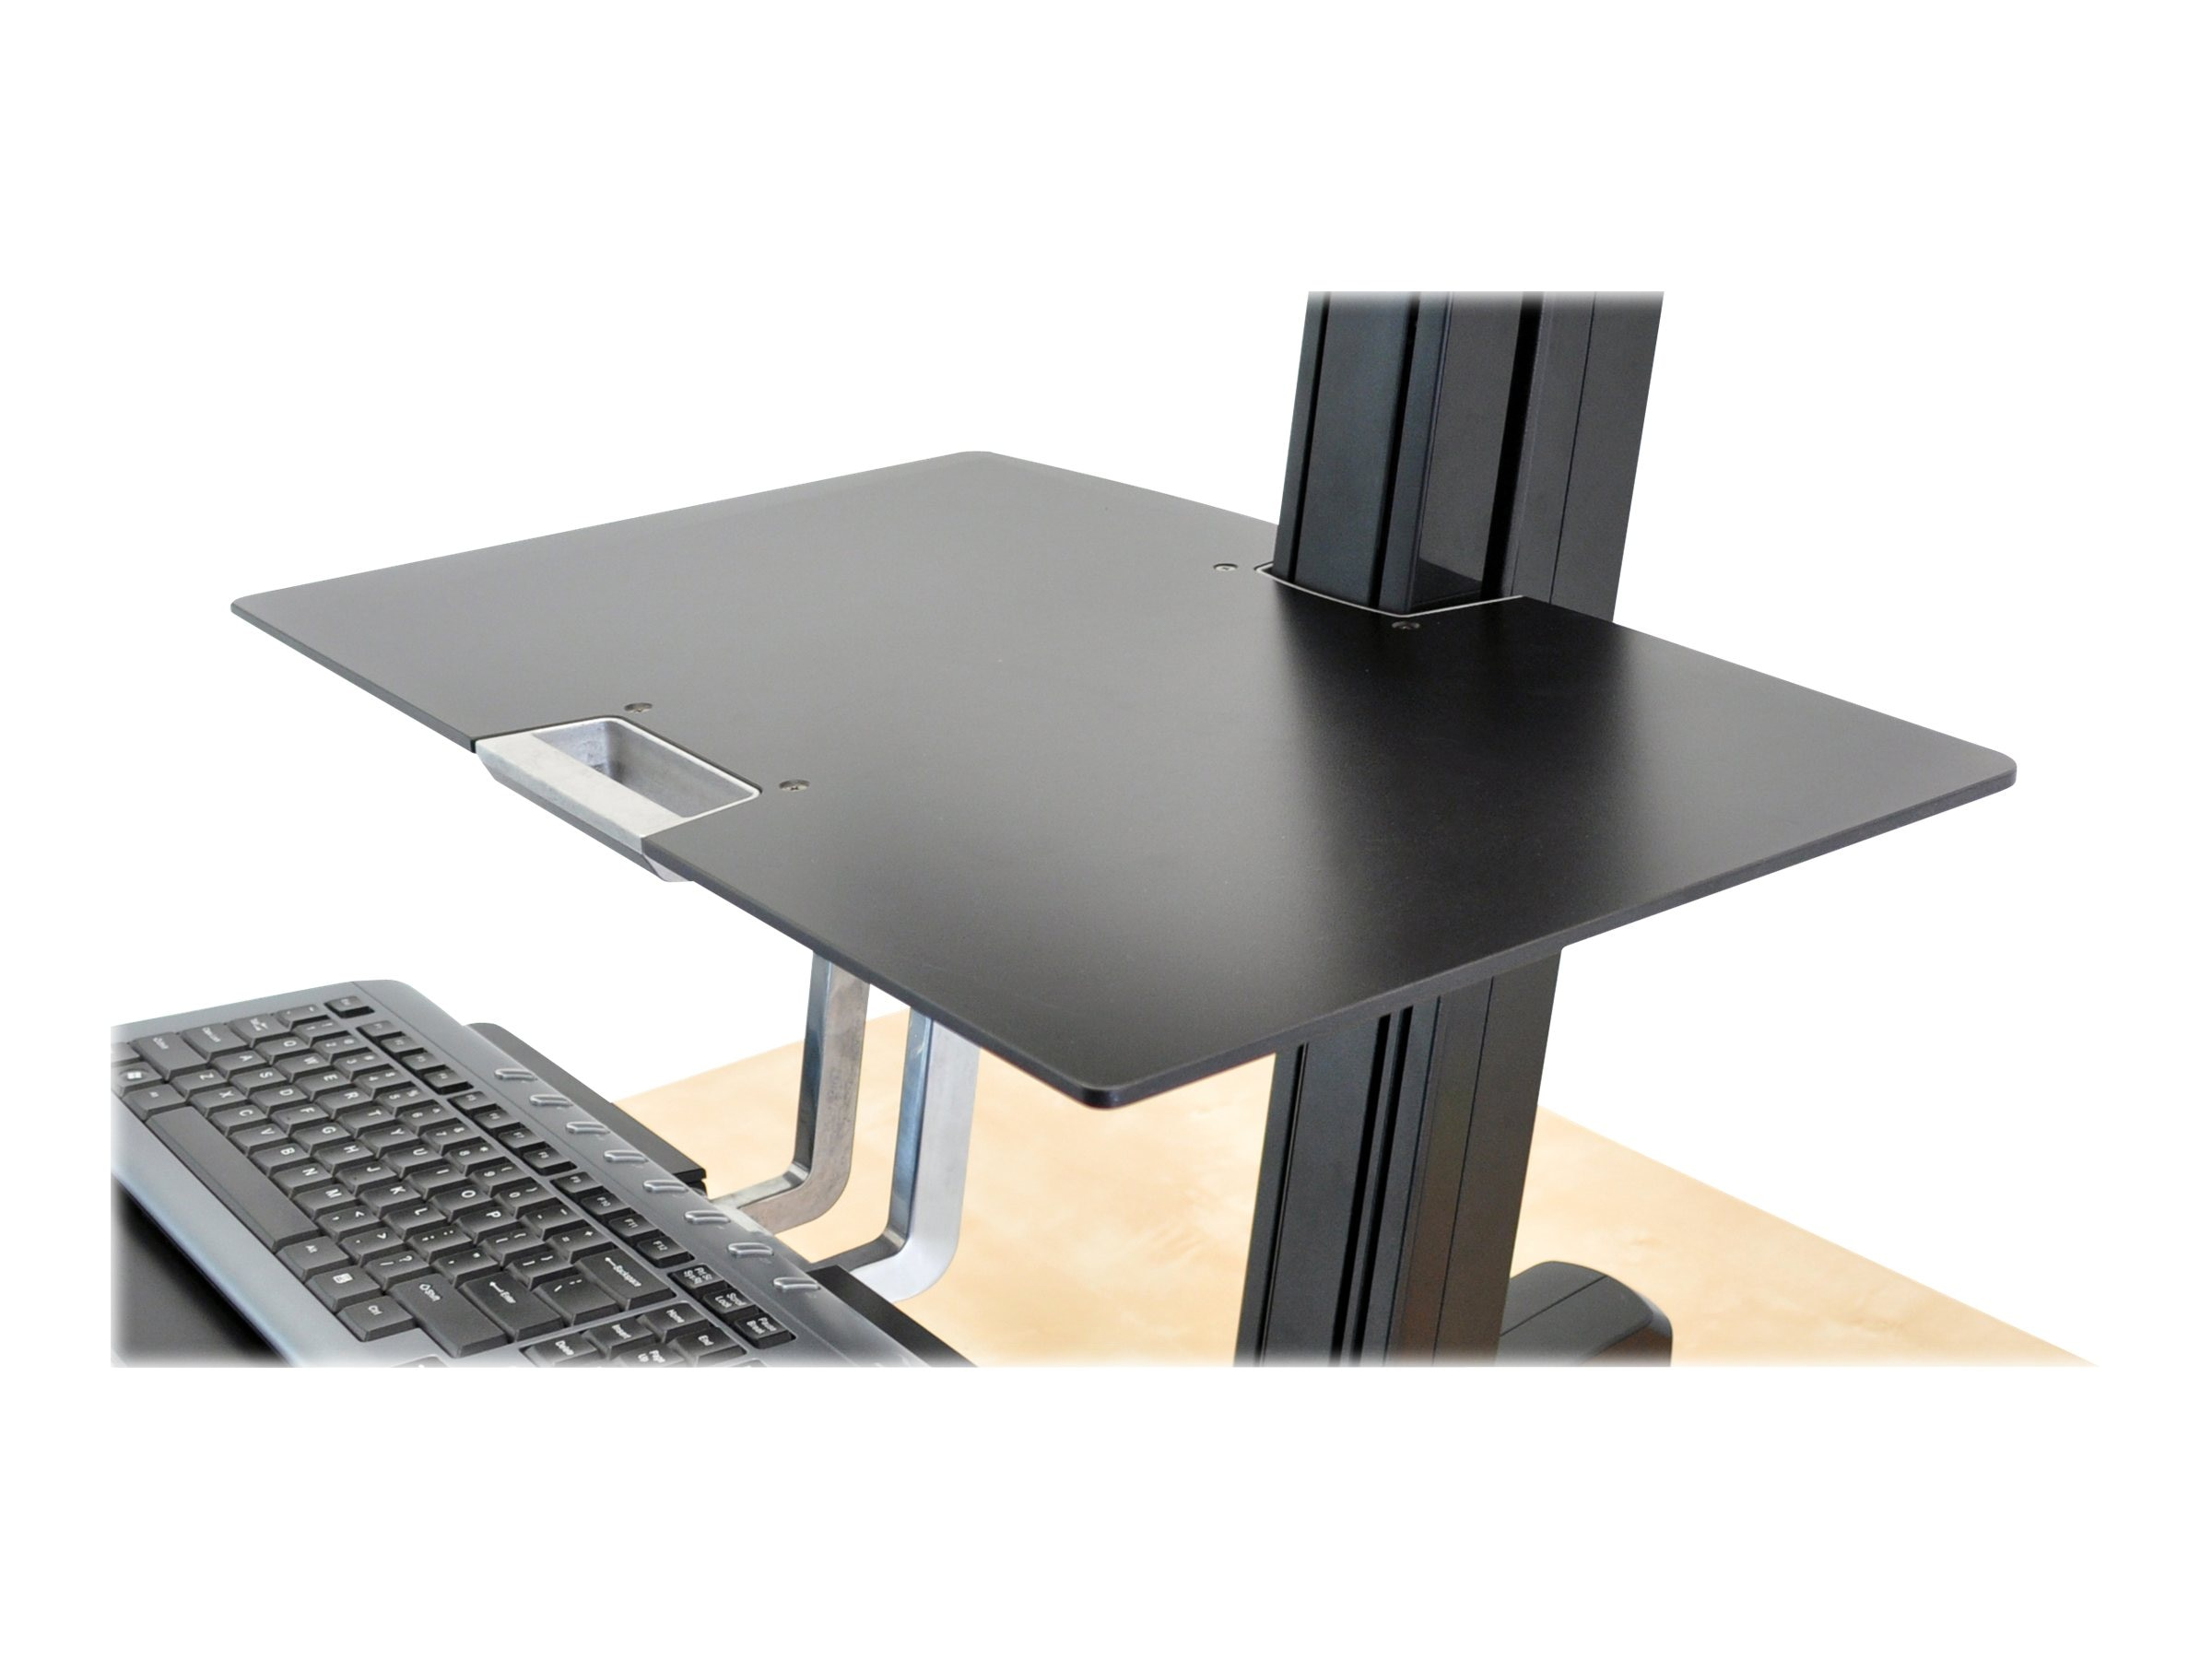 Ergotron Worksurface for WorkFit-S, 97-581-019, 12648998, Ergonomic Products